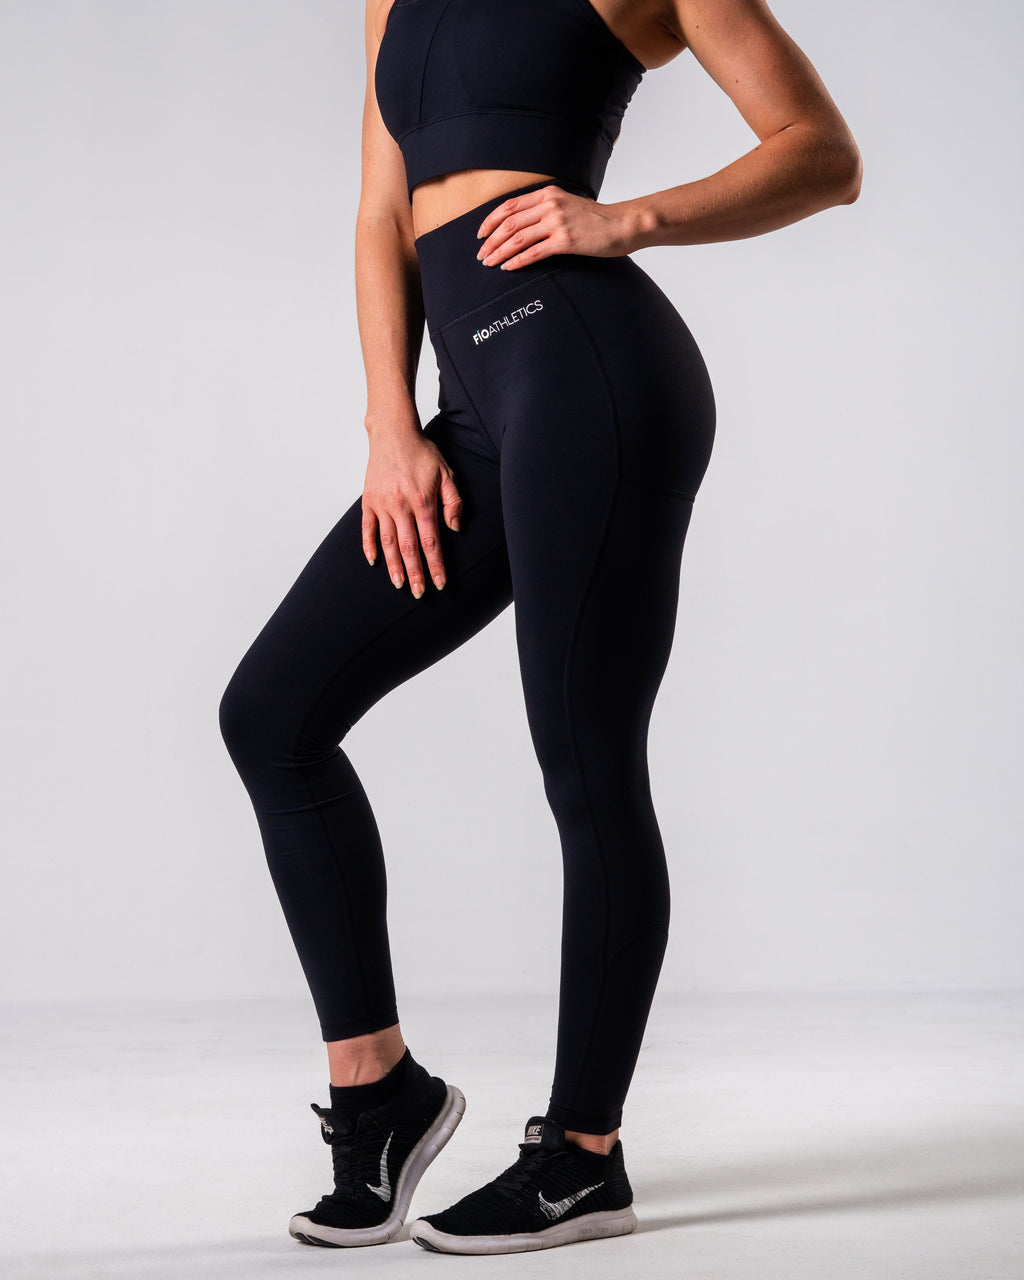 Lush Performance Leggings - Black - FIO Athletics